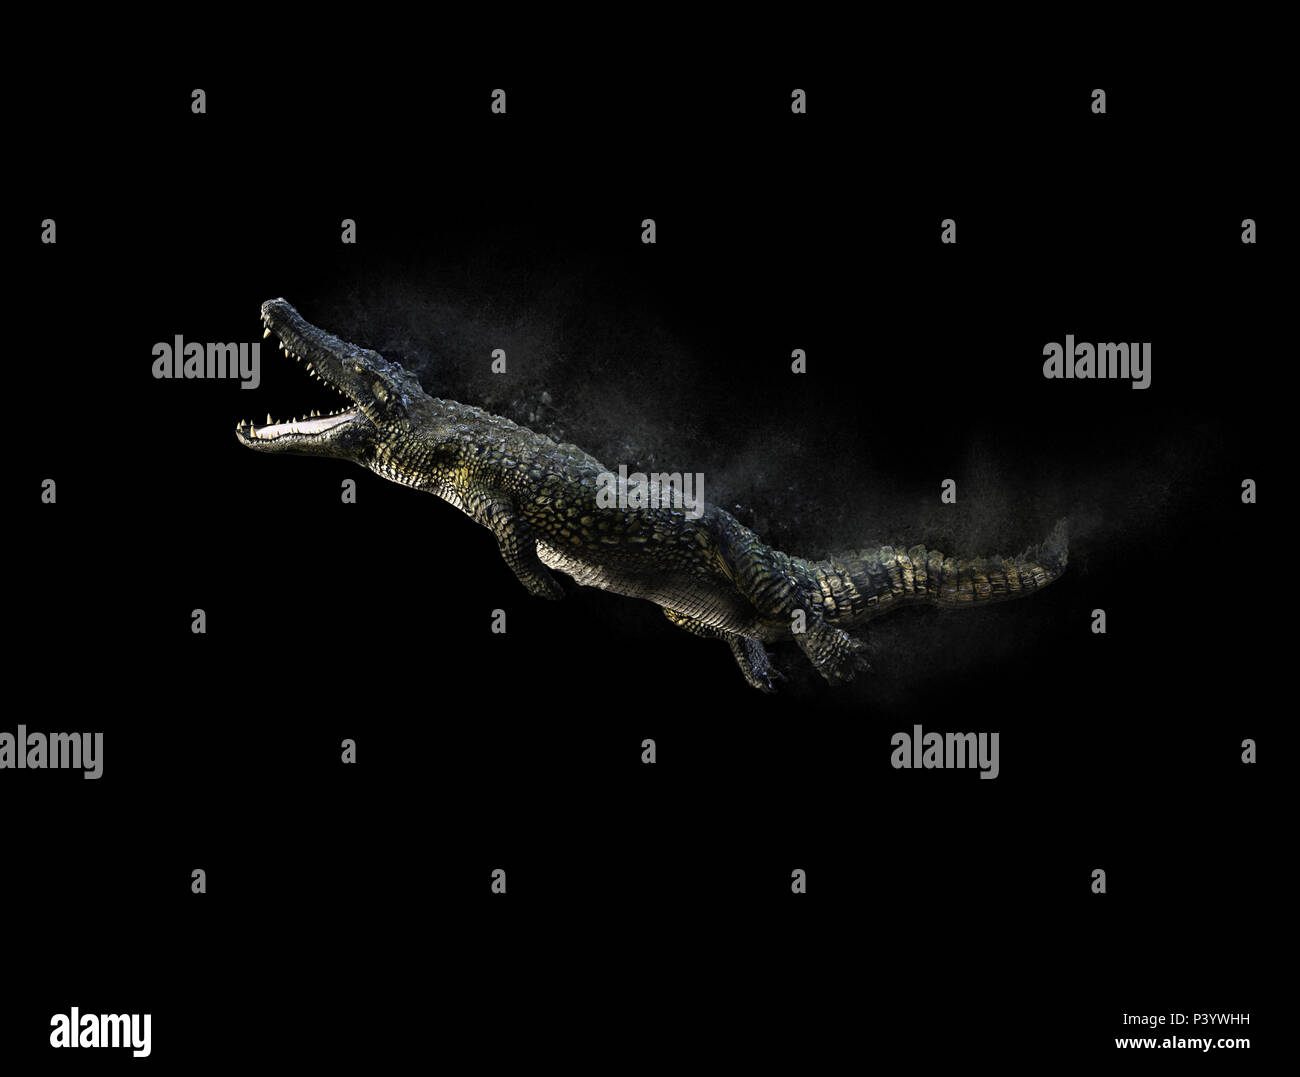 3D Illustration of a green American alligator isolated on grey background, American crocodile. - Stock Image